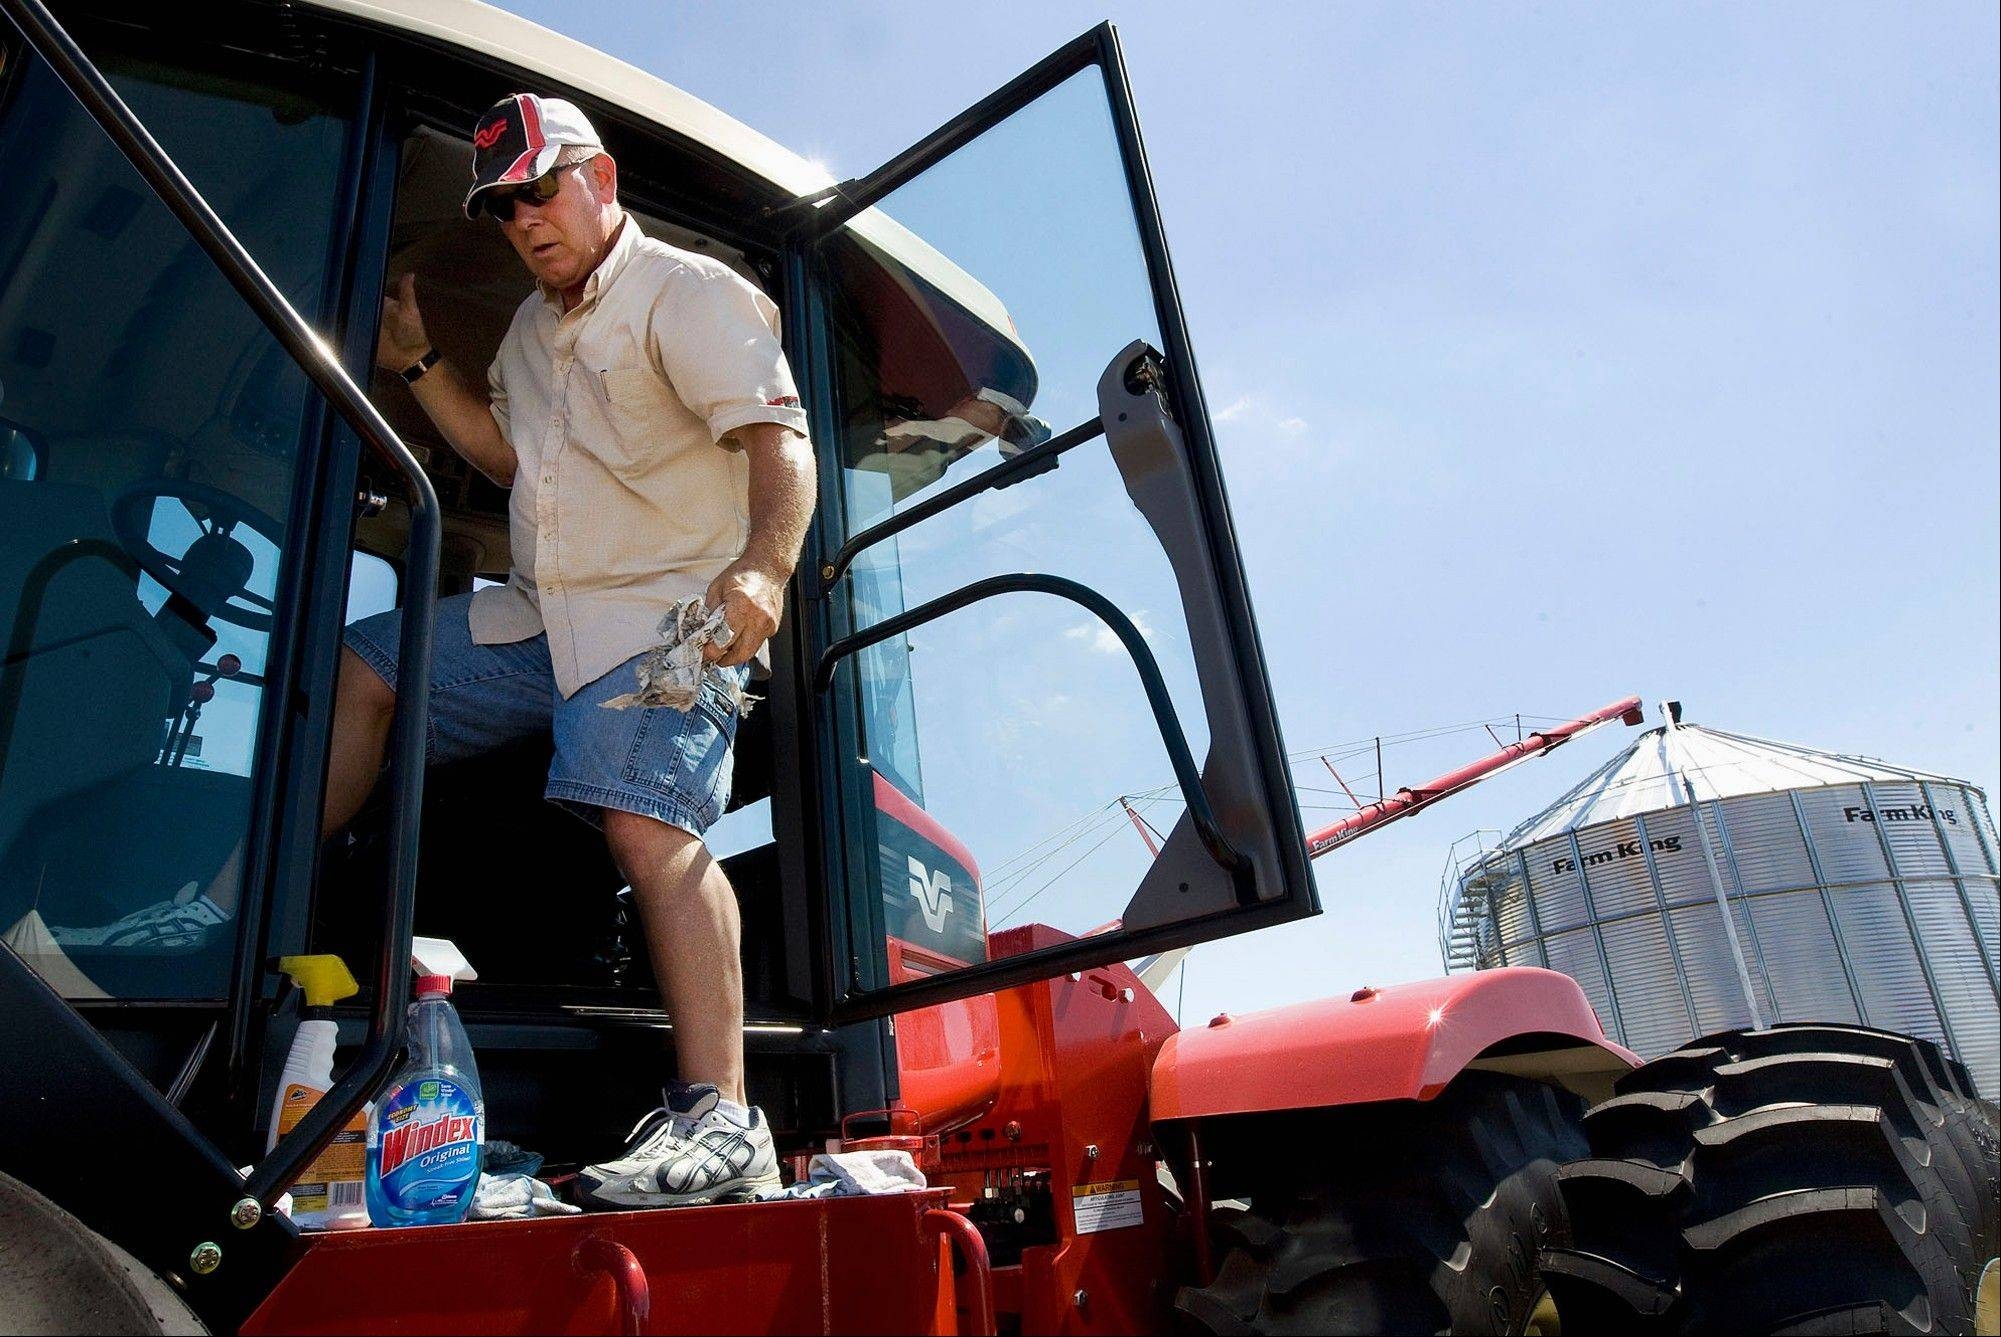 Alan Graff, territorial manager of Winnipeg, Canada-based Buhler Industries, does some last minute cleaning to his Versatile tractor at the 2011 Farm Progress Show.